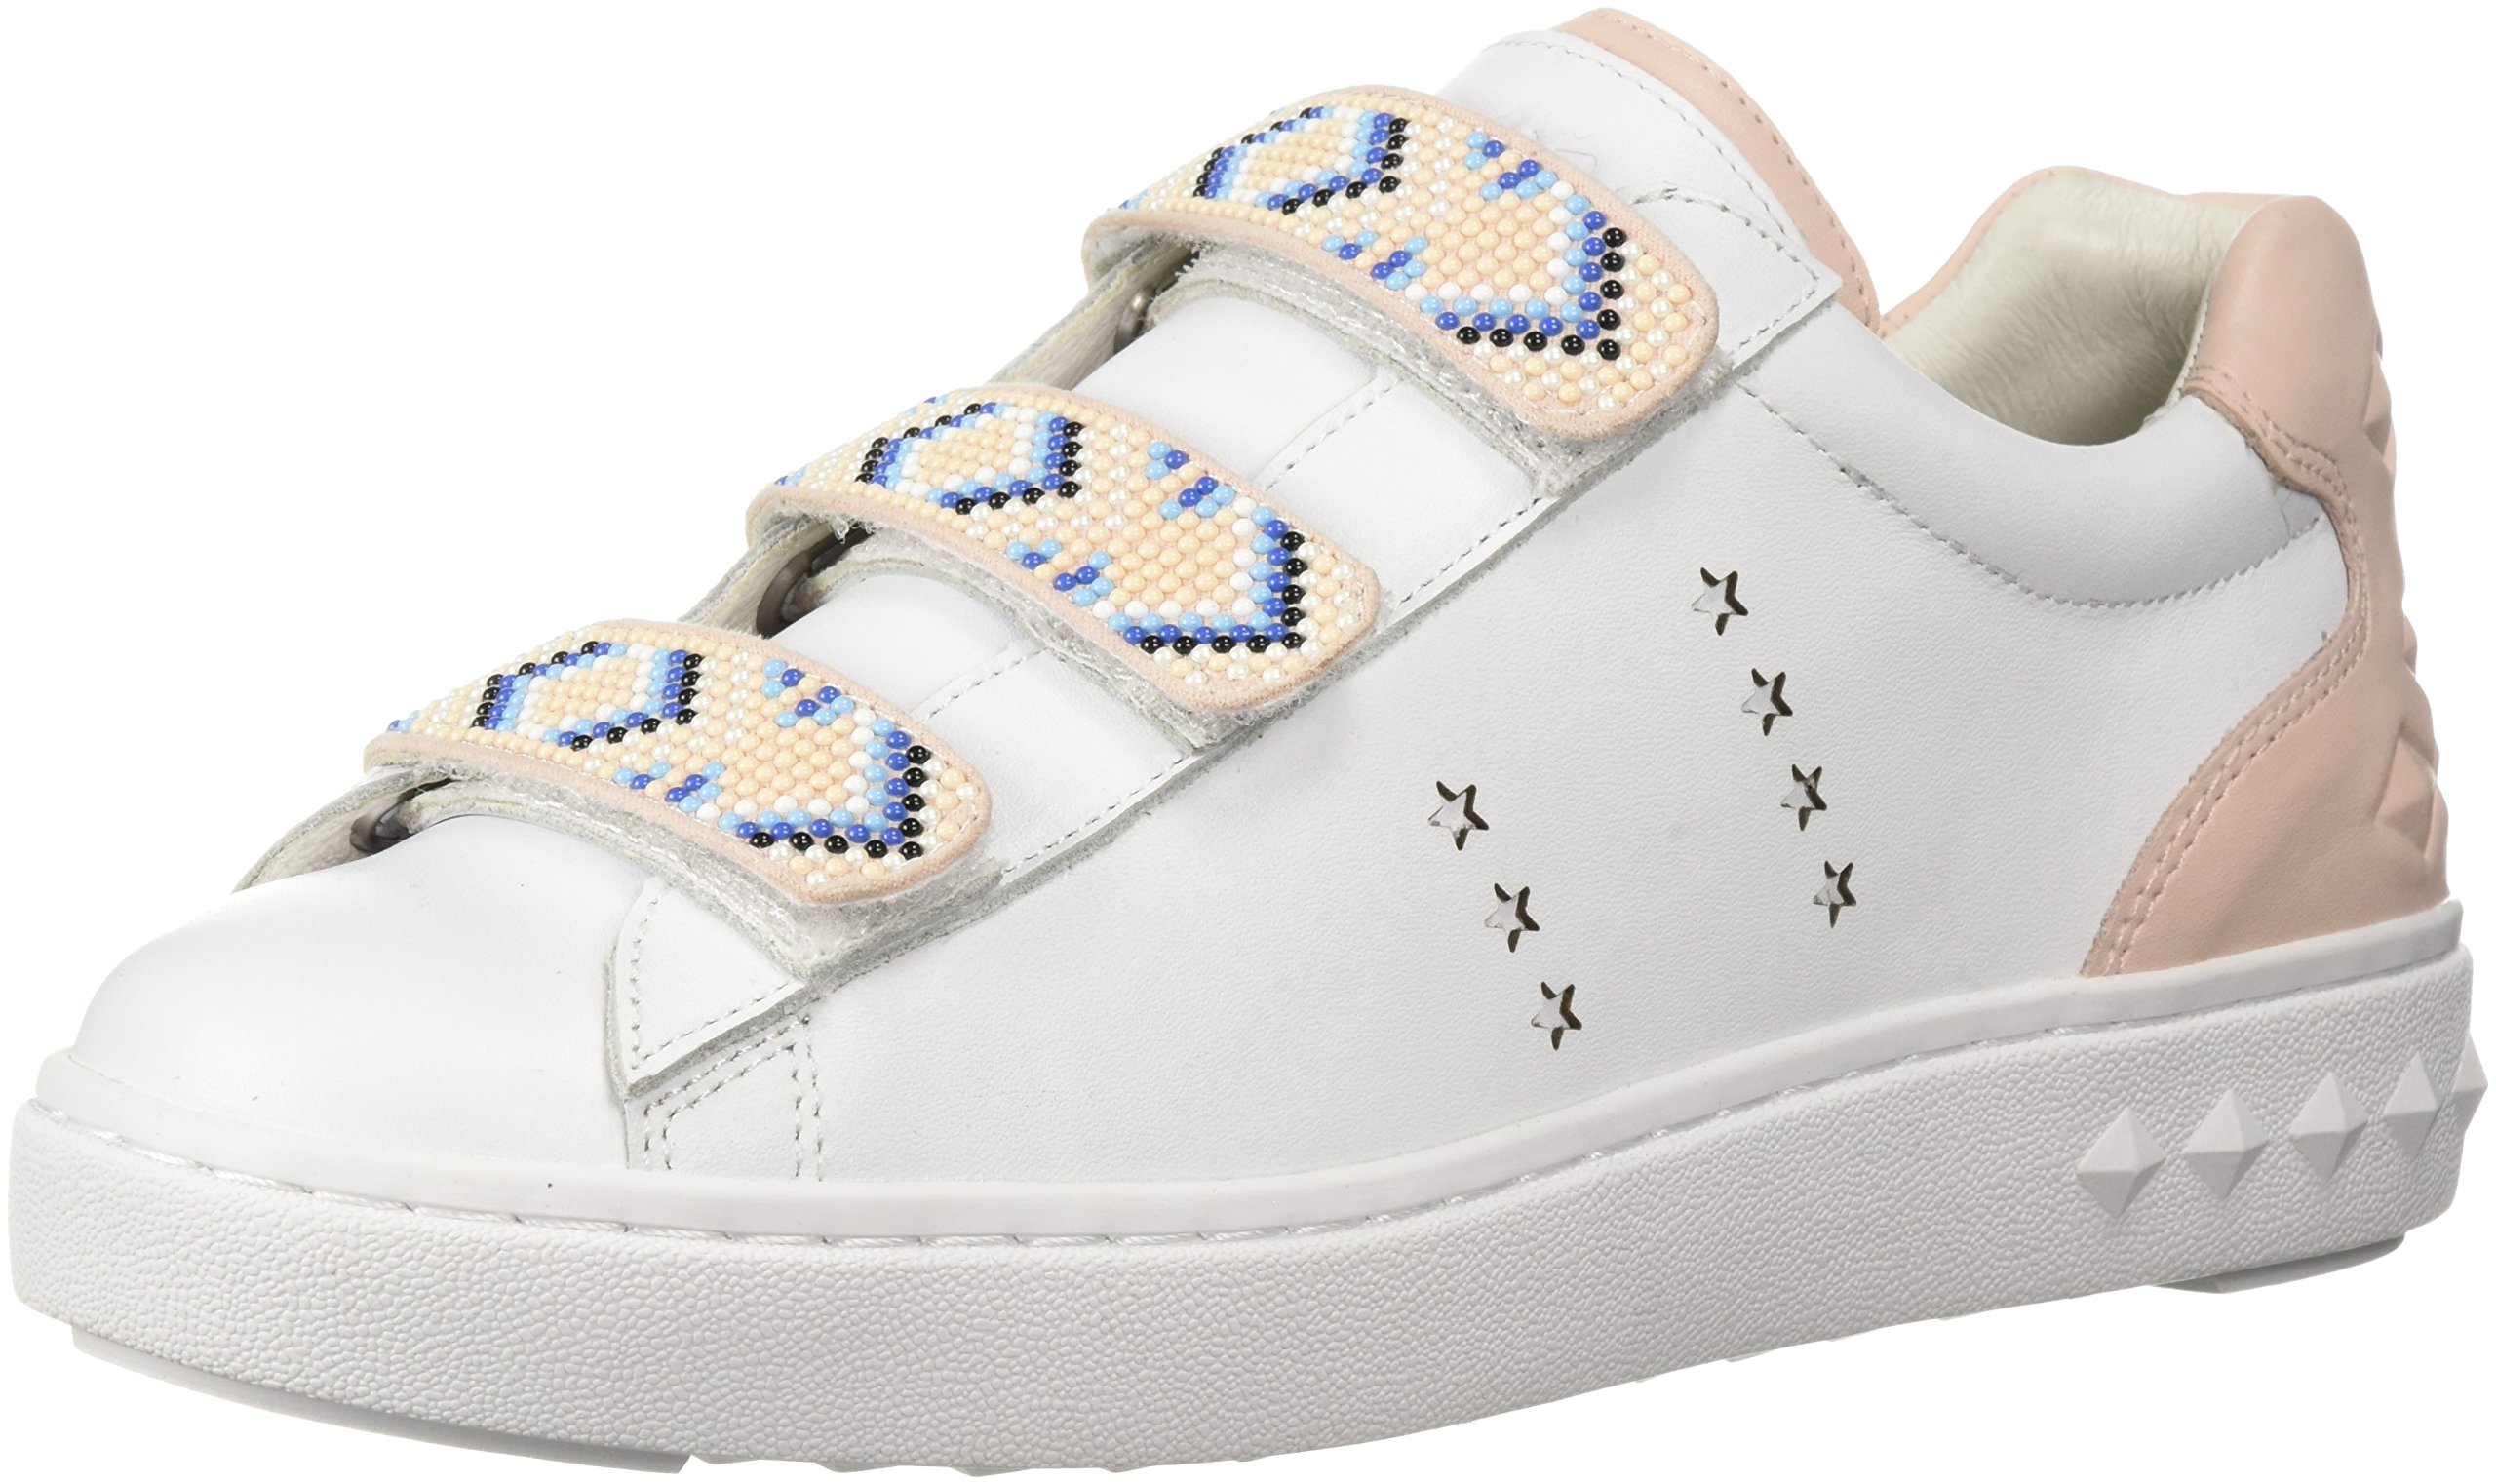 Ash Women's AS-Pharell Sneaker, White/Powder, 39 M EU (9 US)